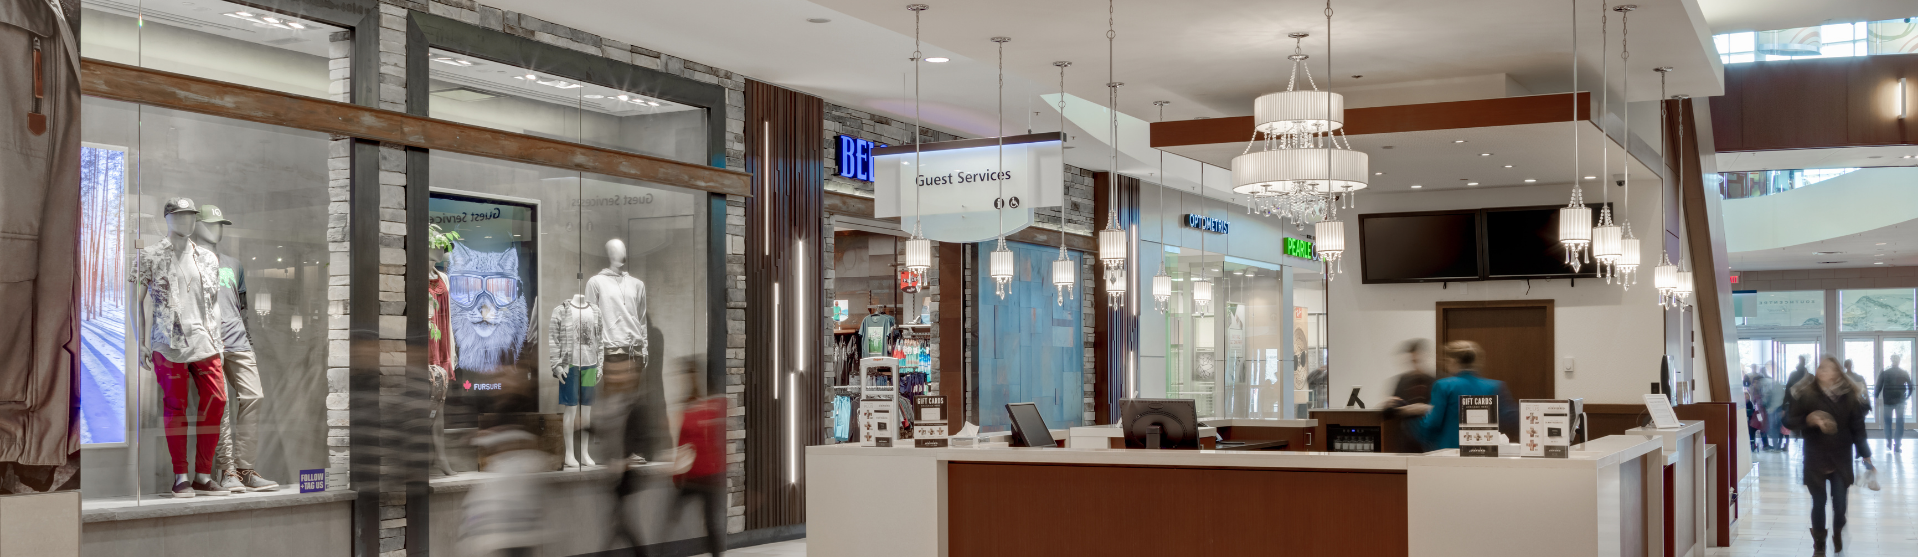 Shot of Guest Services kiosk